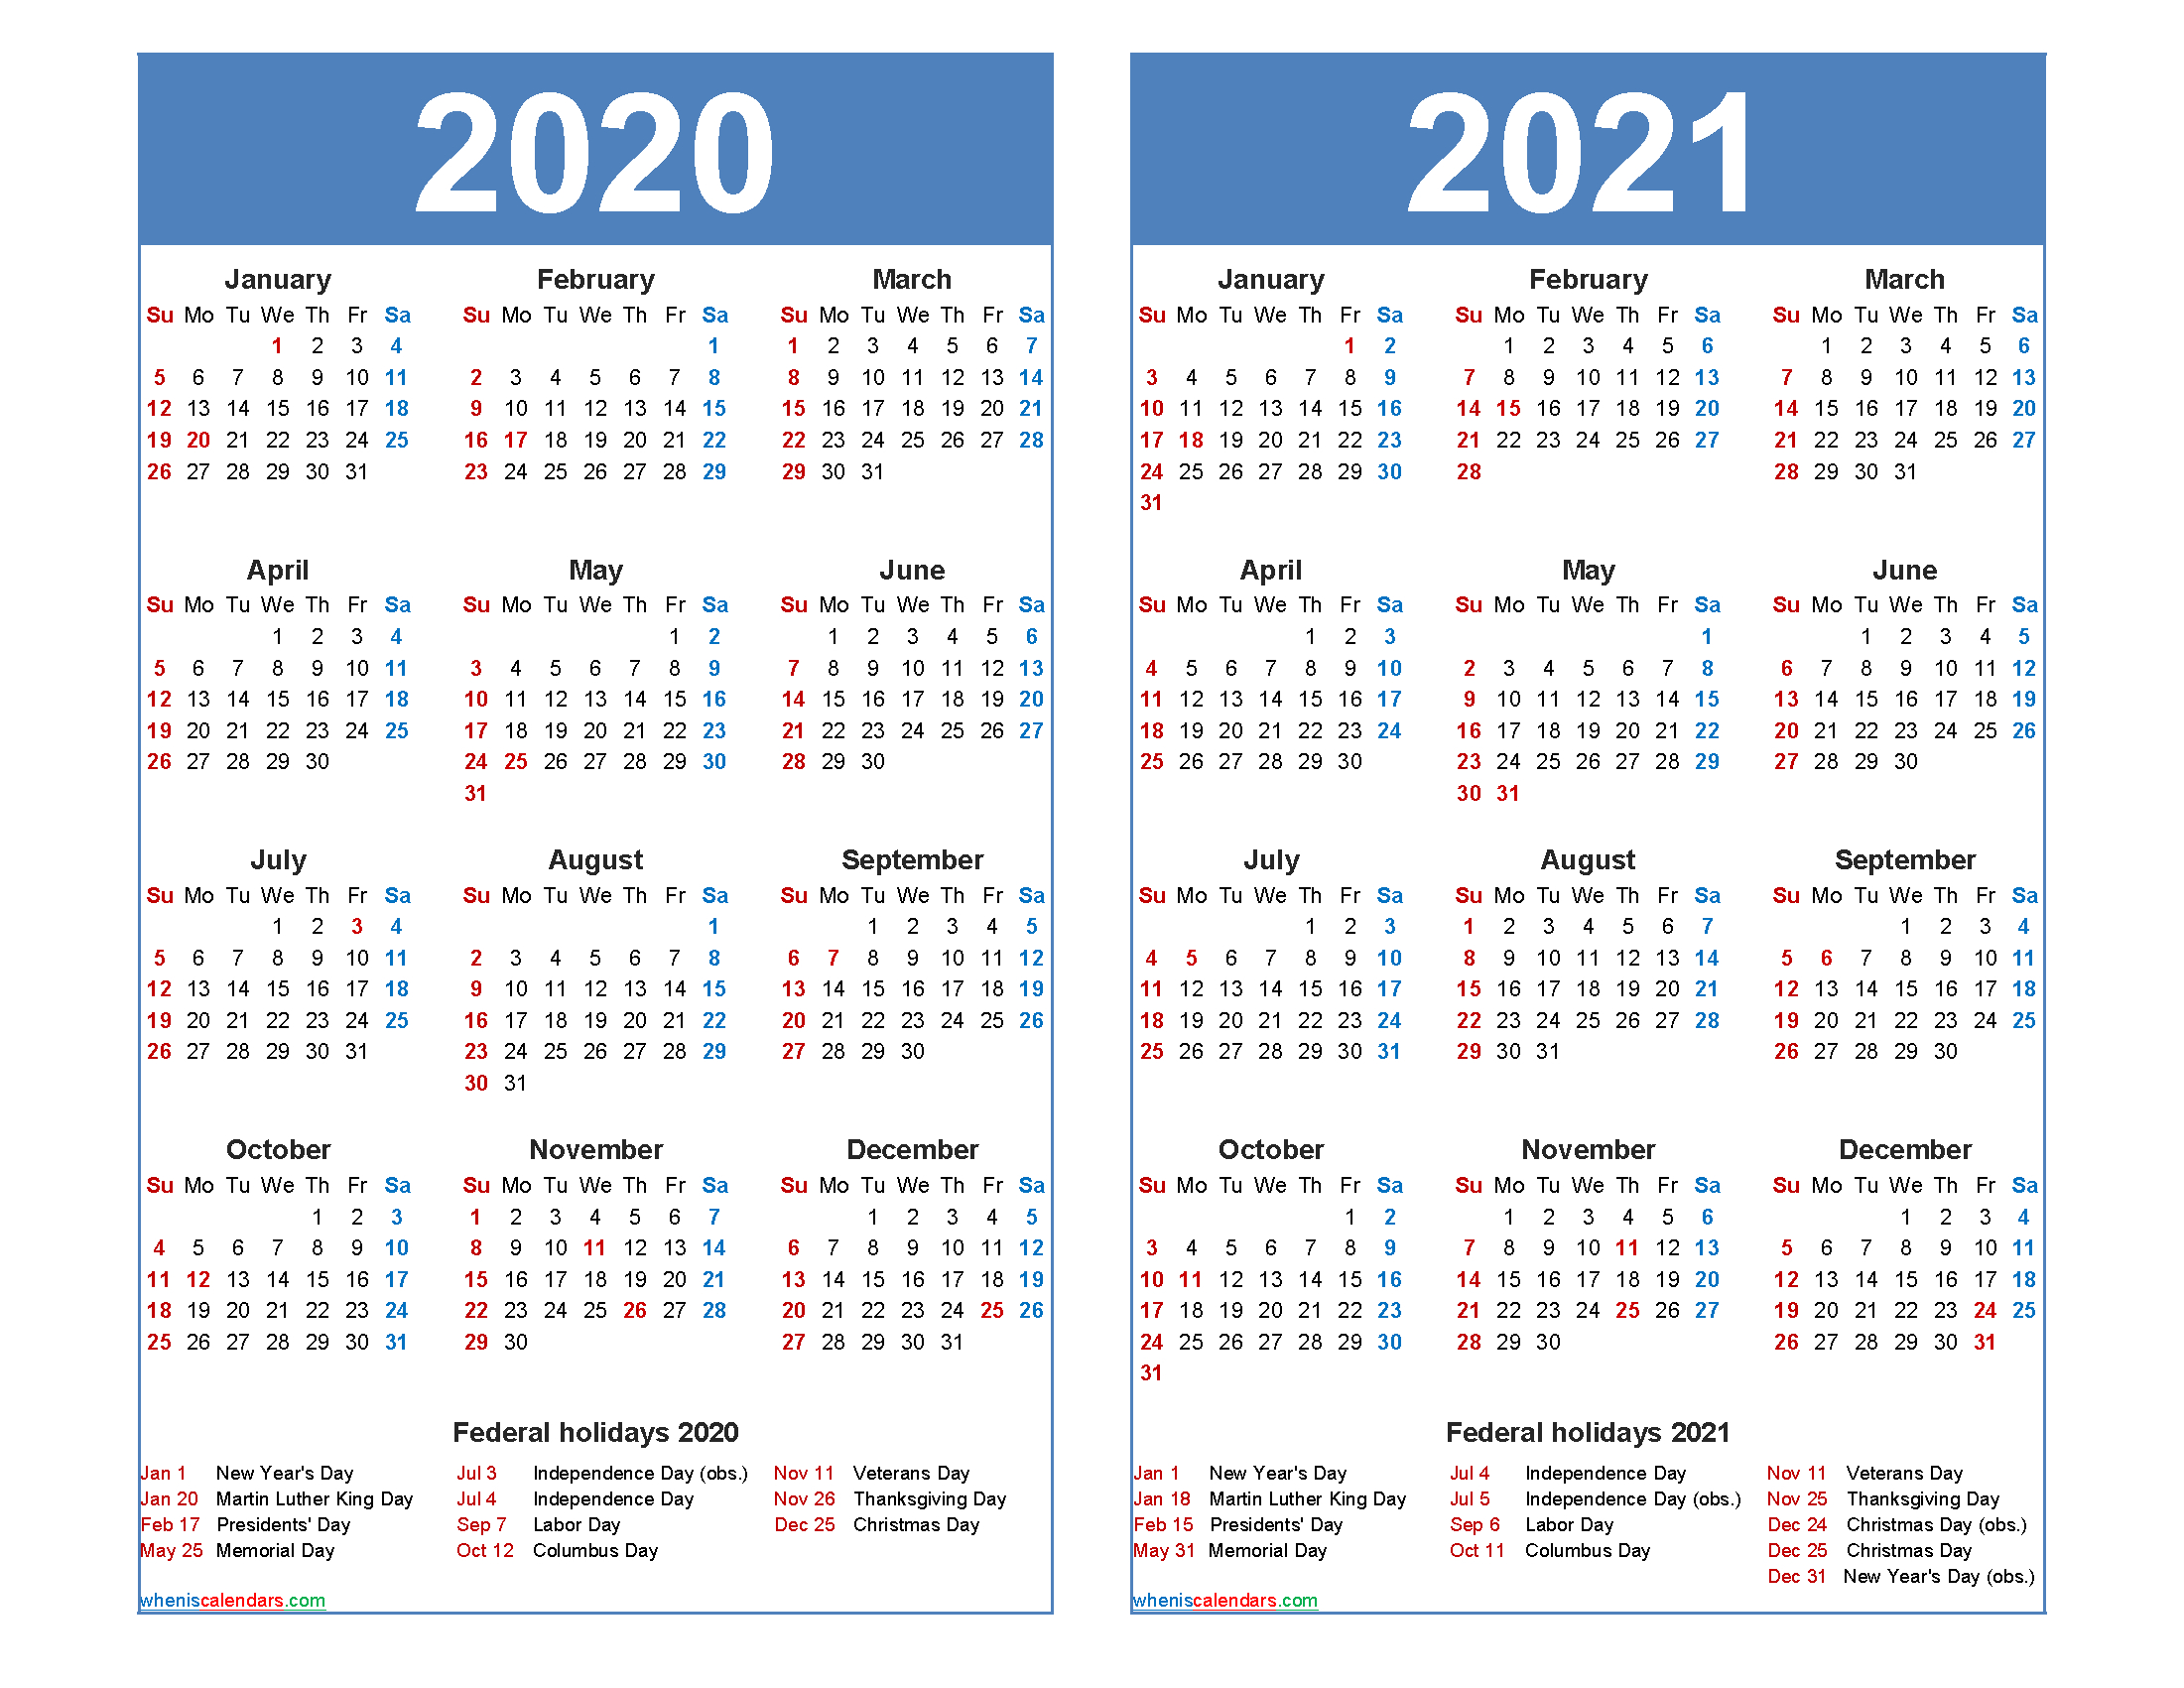 Free 2020 2021 Calendar Printable With Holidays-2 Page Printable Yearly Calendar Template 2021